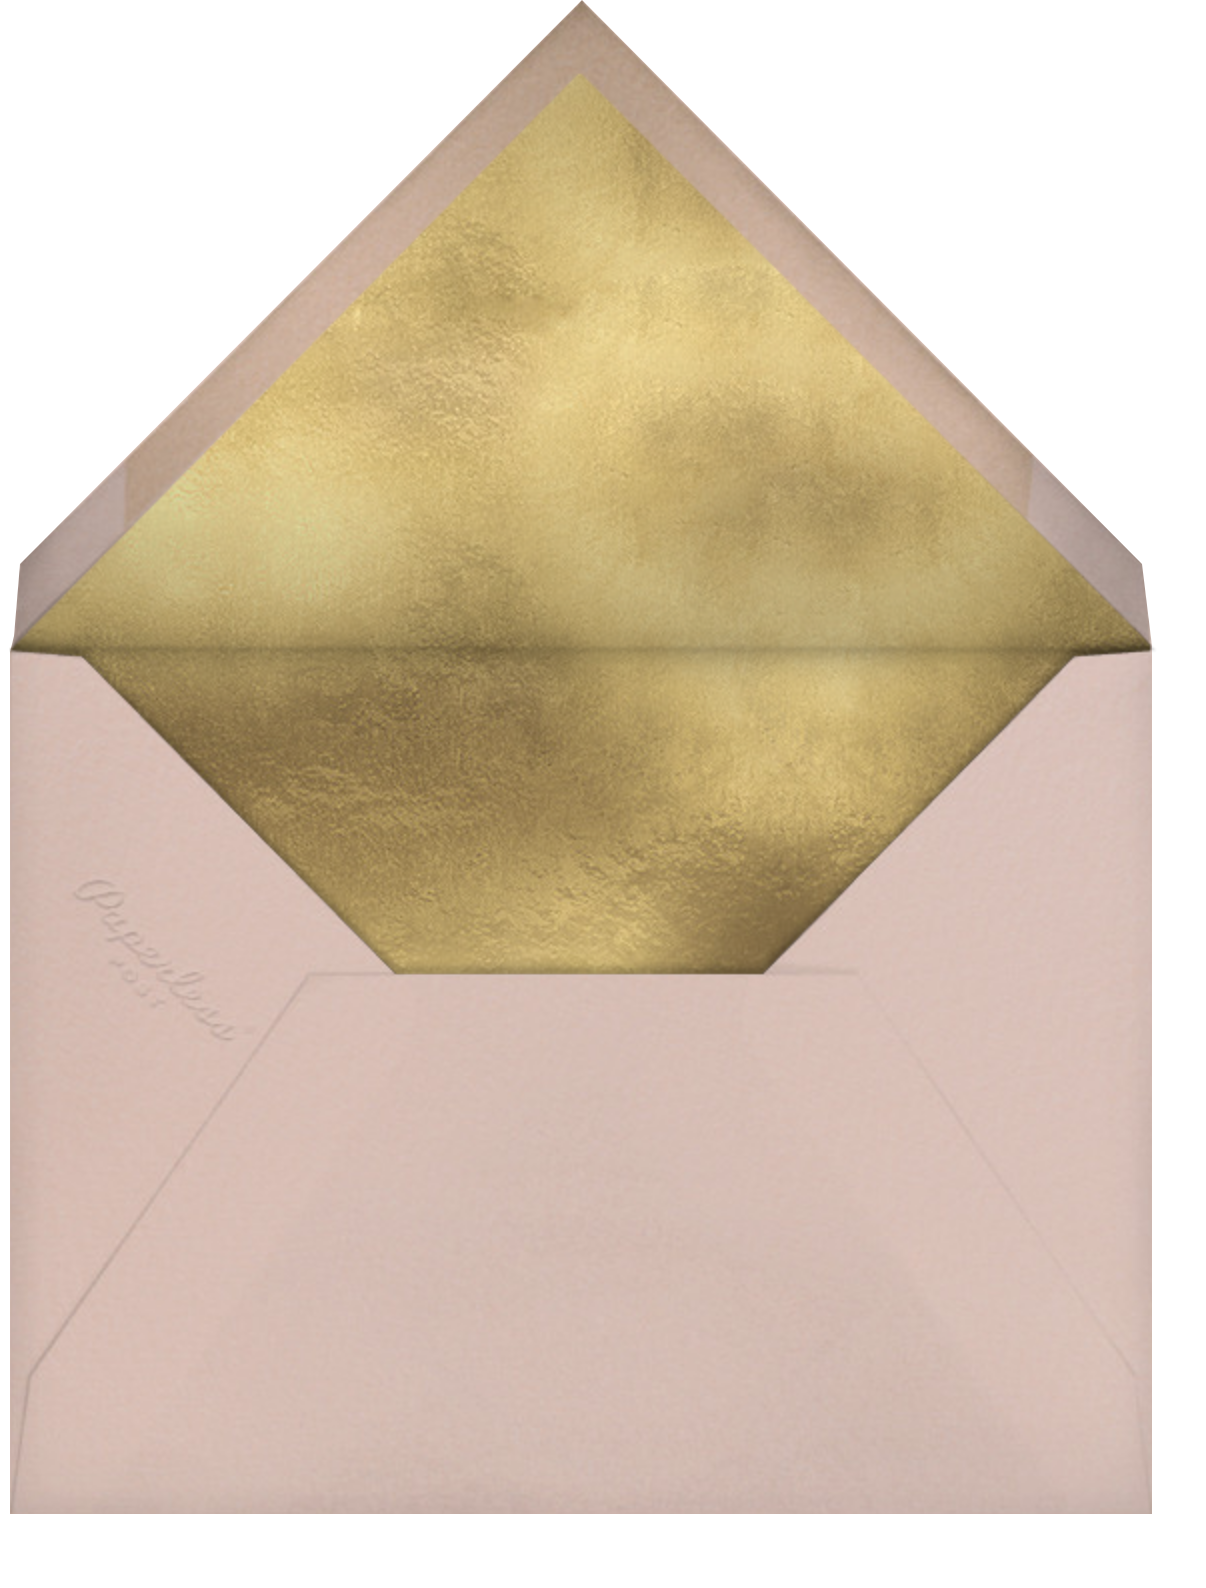 Western Swizzler - Cream - Paperless Post - General entertaining - envelope back